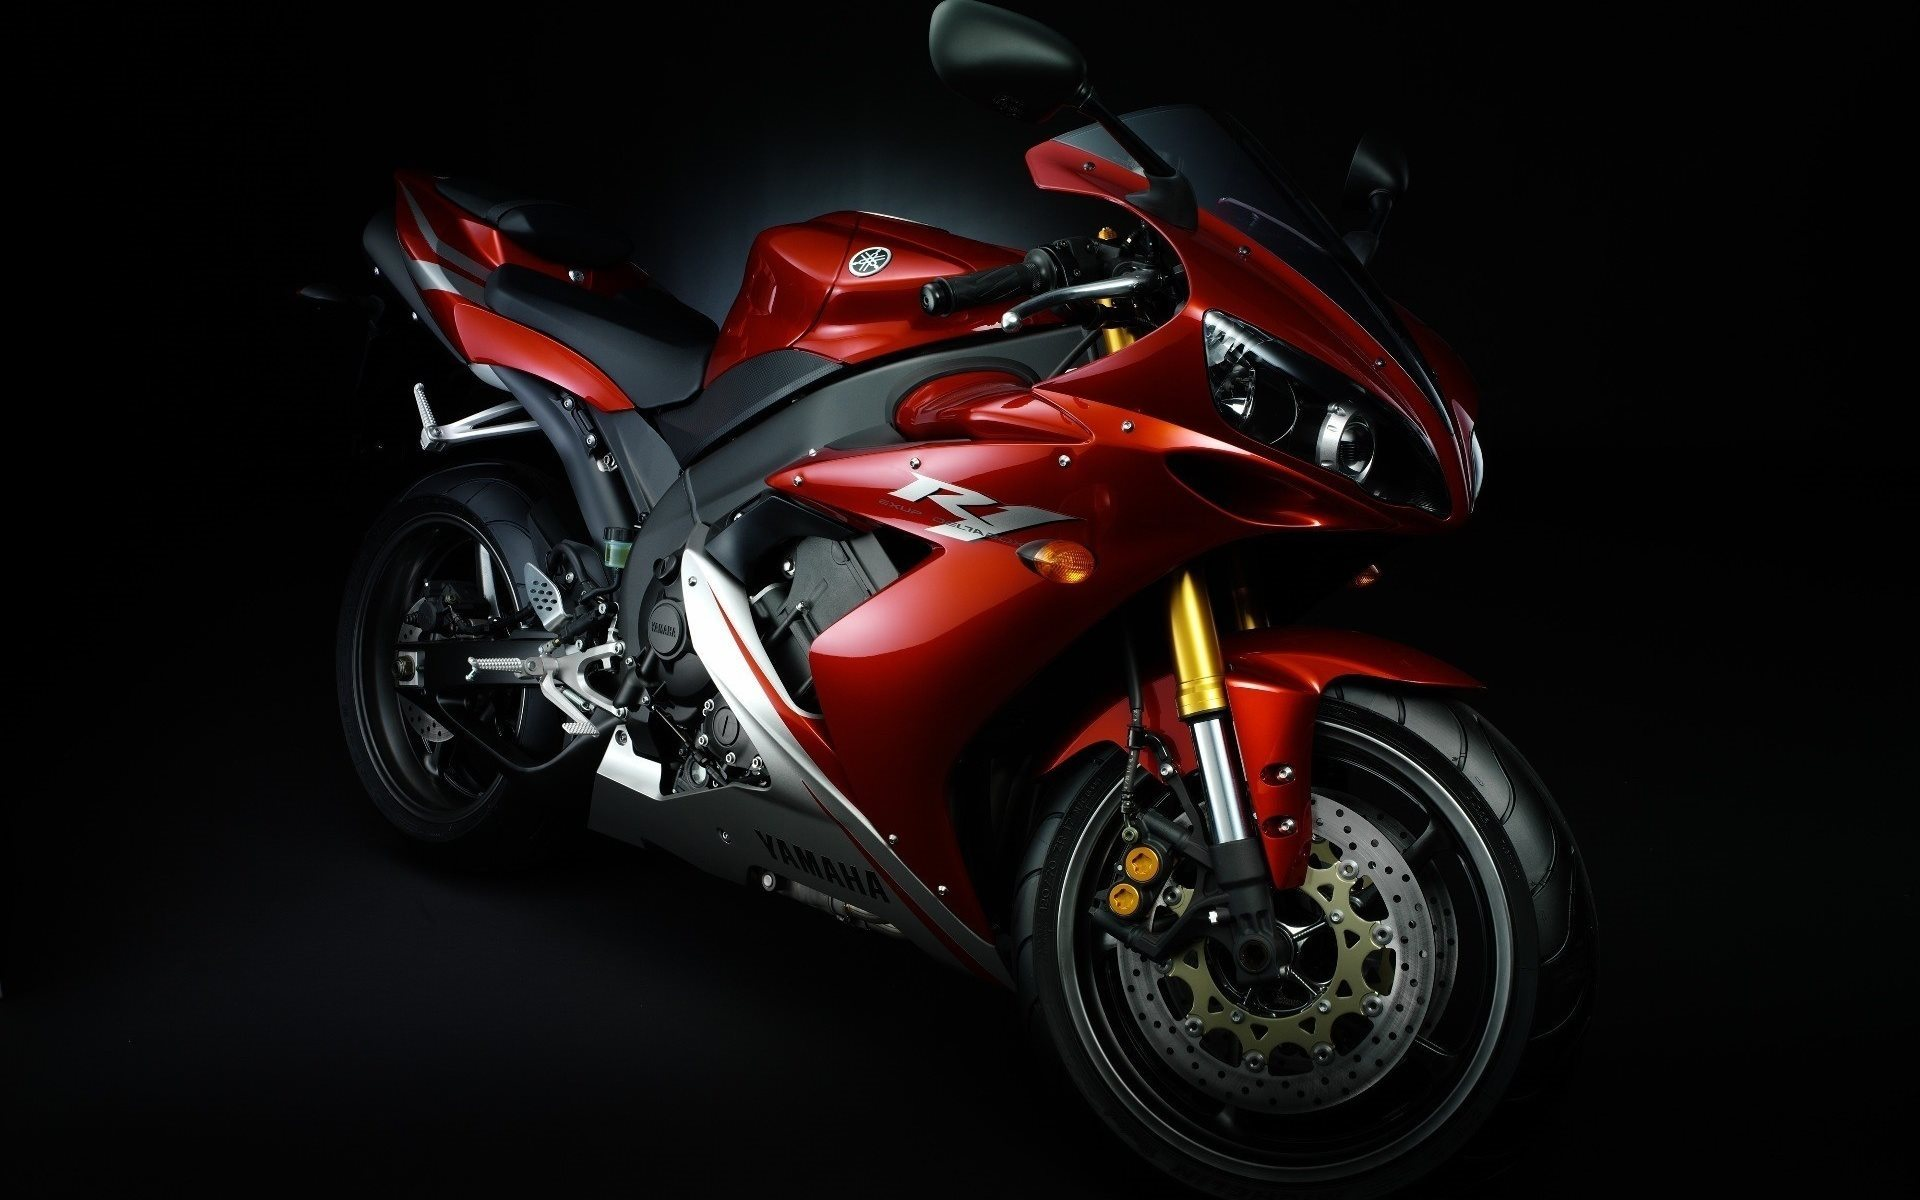 yamaha yzf r1 sportbikes darkness japanese motorcycles 3868 1920x1200